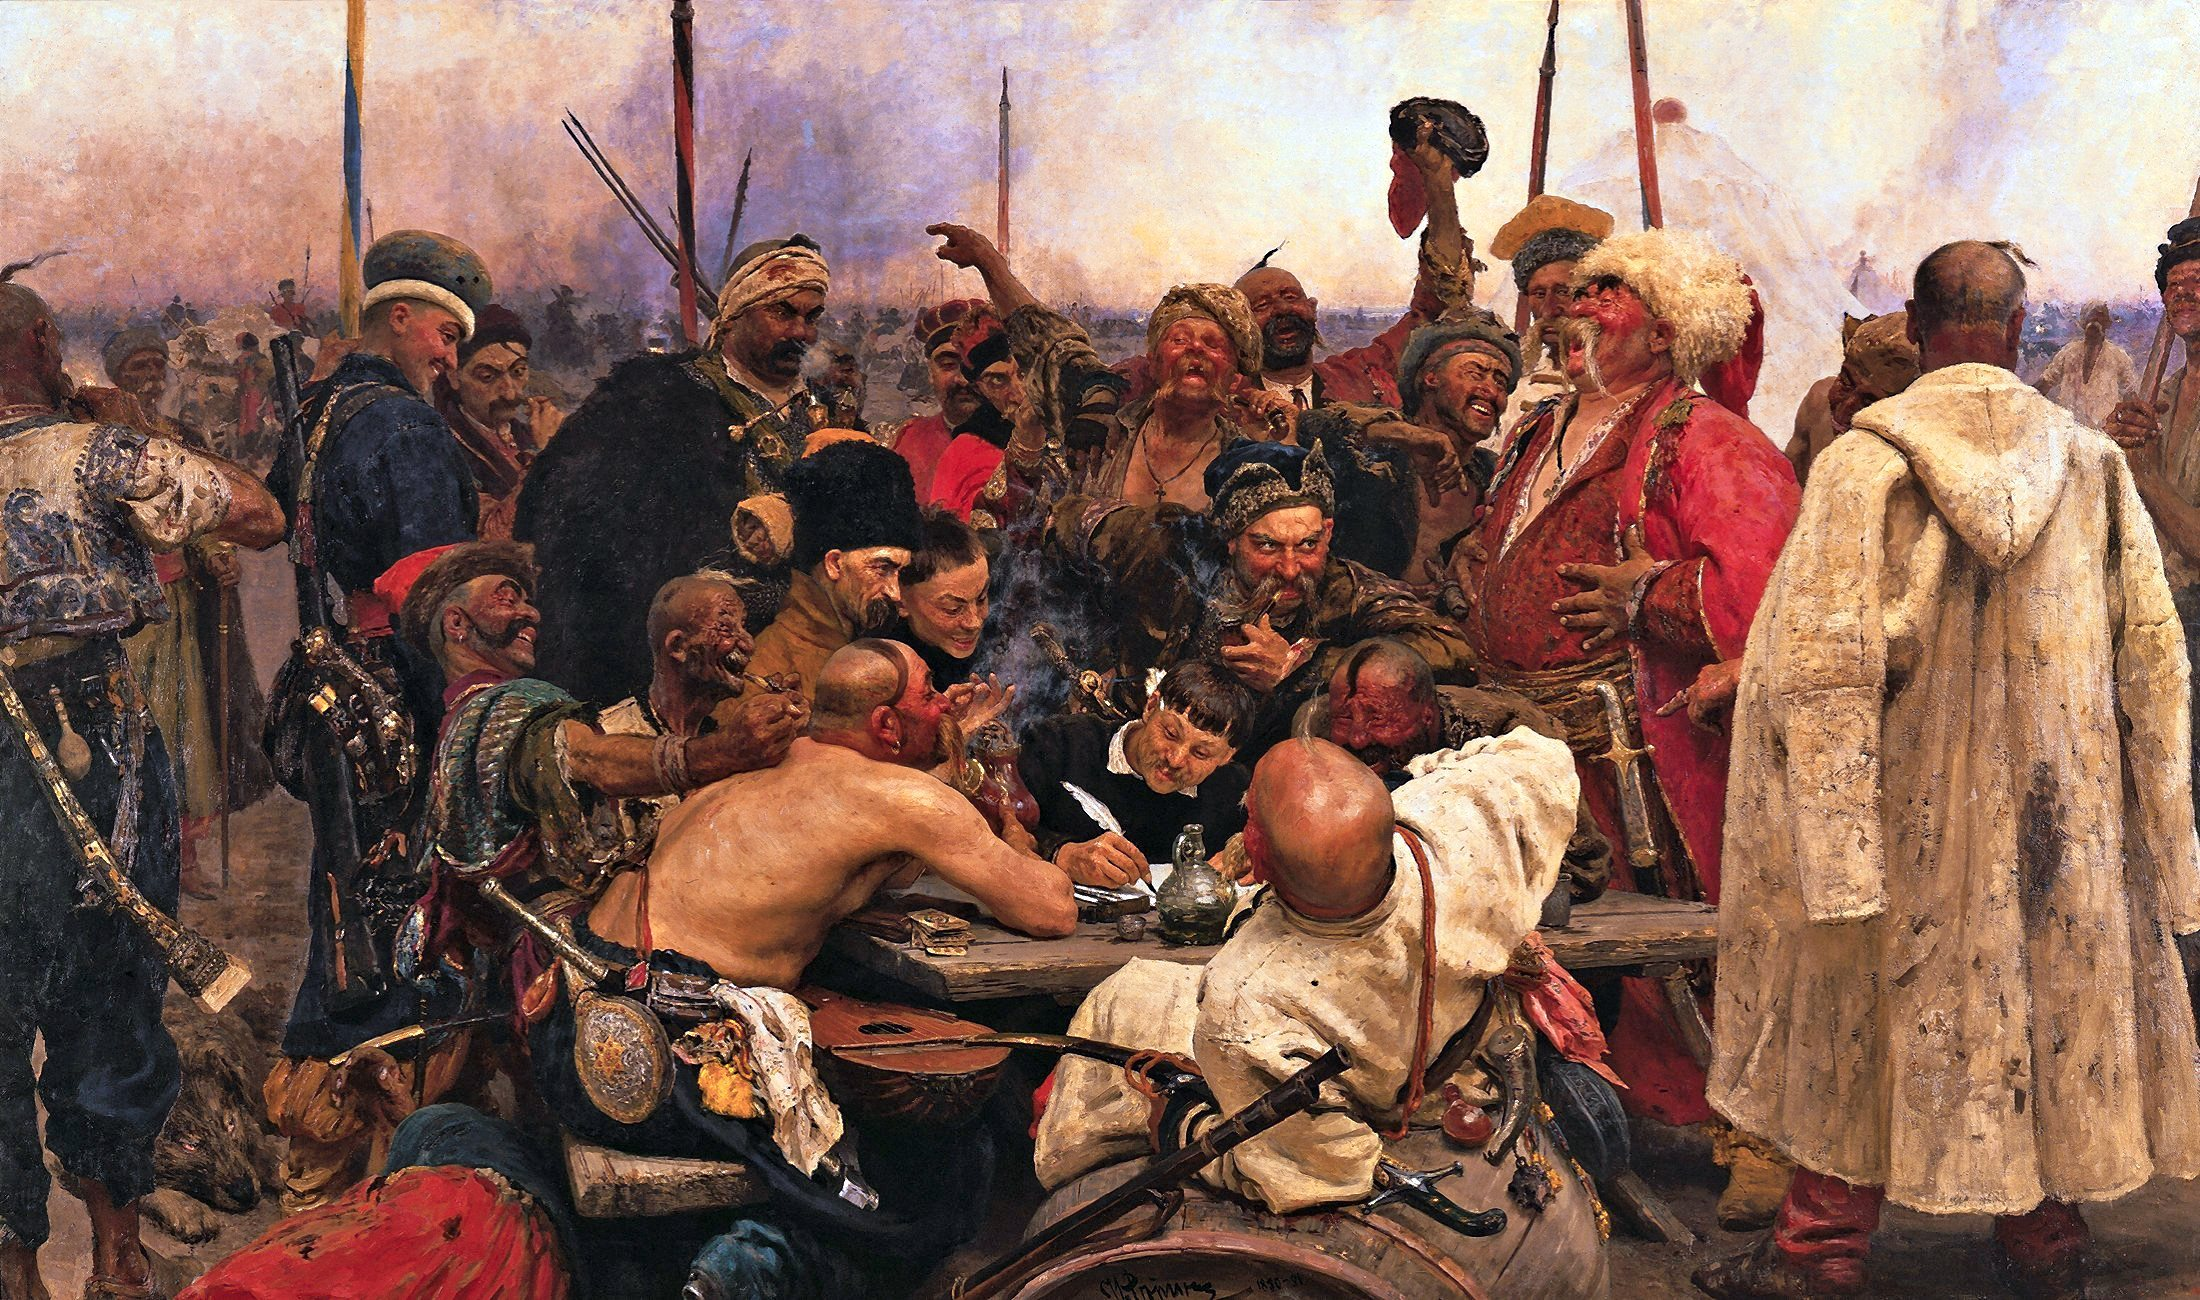 00 Ilya Repin. The Zaporozhe Cossacks Write a Mocking Letter to the Turkish Sultan. 1891